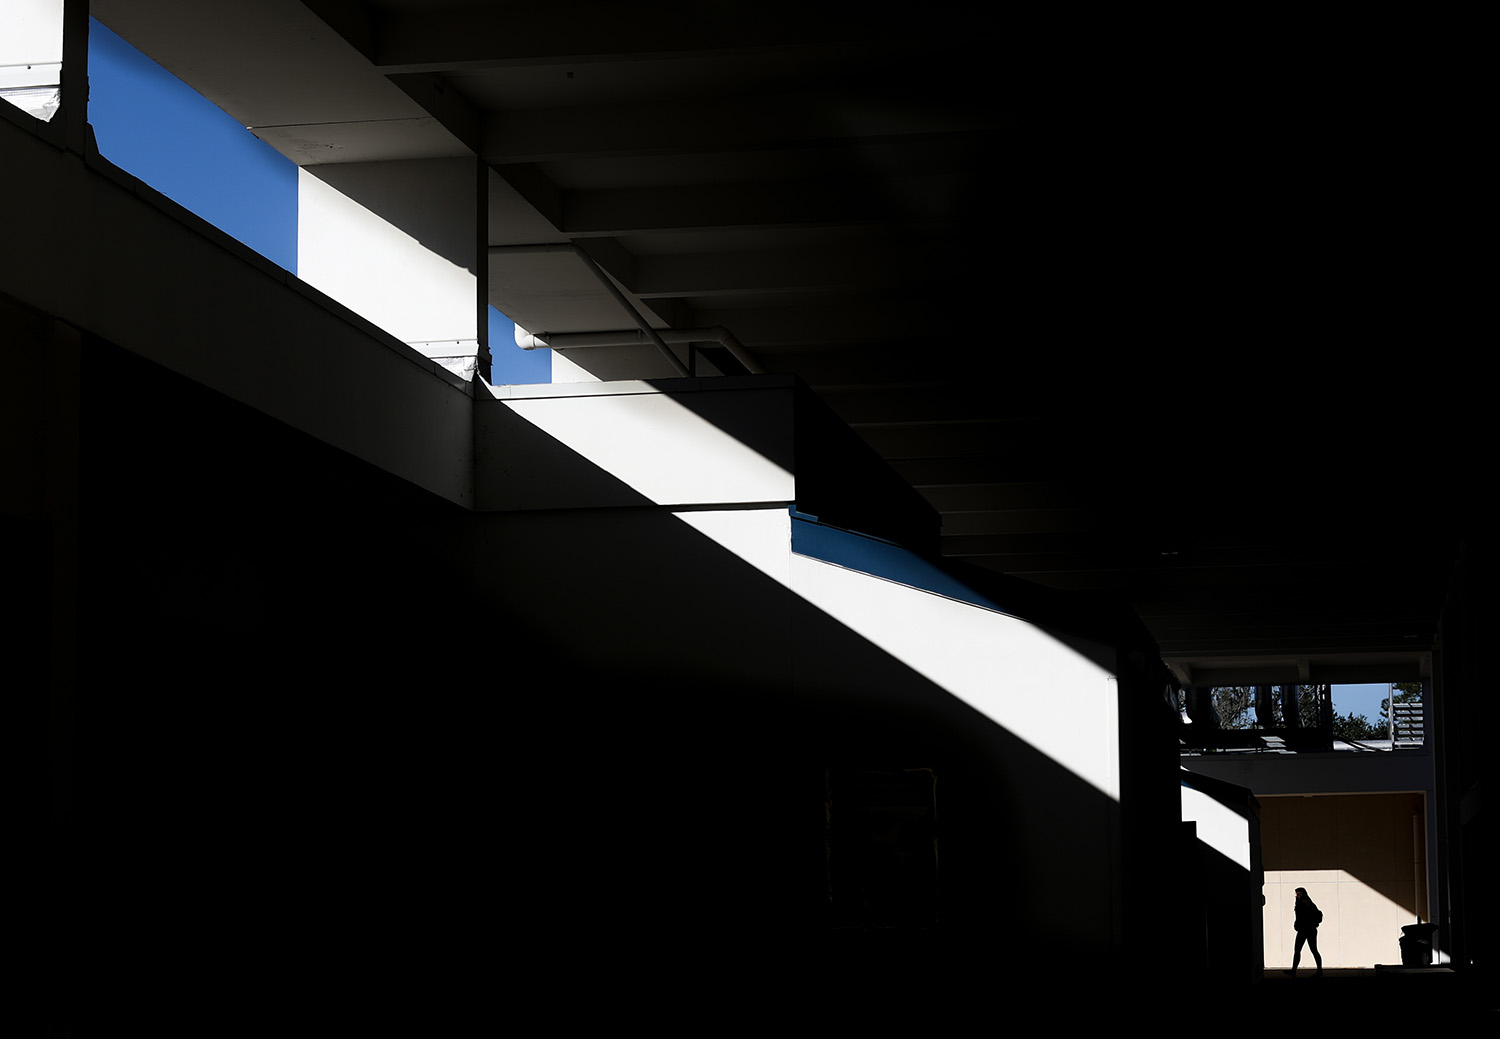 Light falls across the breezeway between buildings E and A on Thursday, Nov. 16, 2017 in Gainesville, Fla. (Photo by Matt Stamey/Santa Fe College)